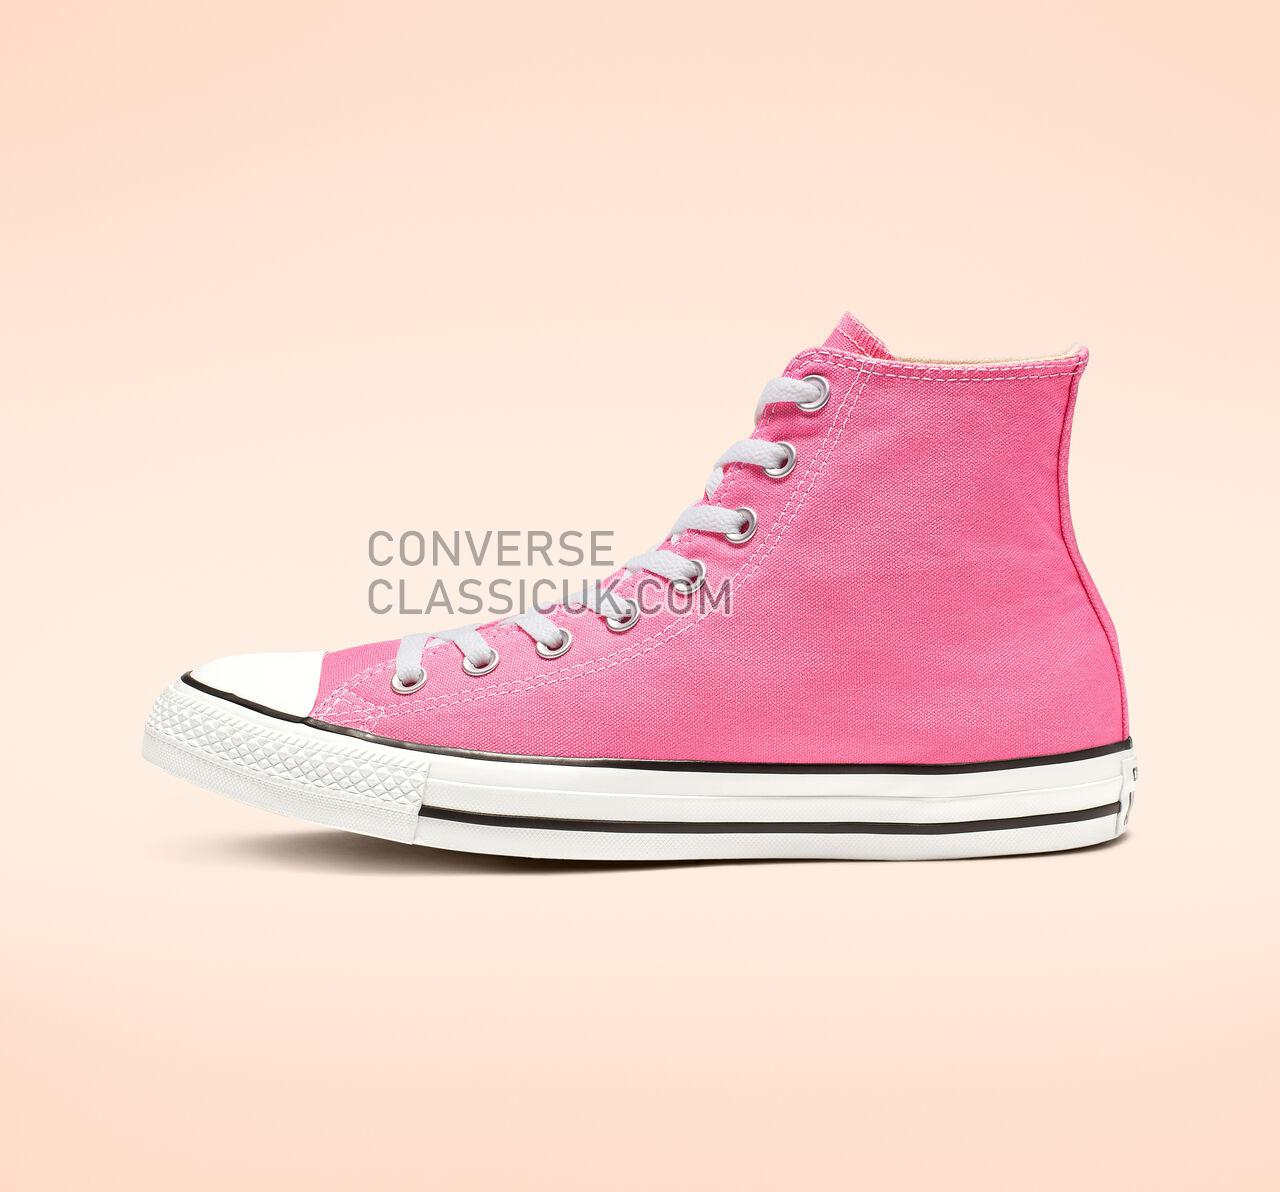 Converse Chuck Taylor All Star High Top Mens Womens Unisex M9006 Pink Shoes